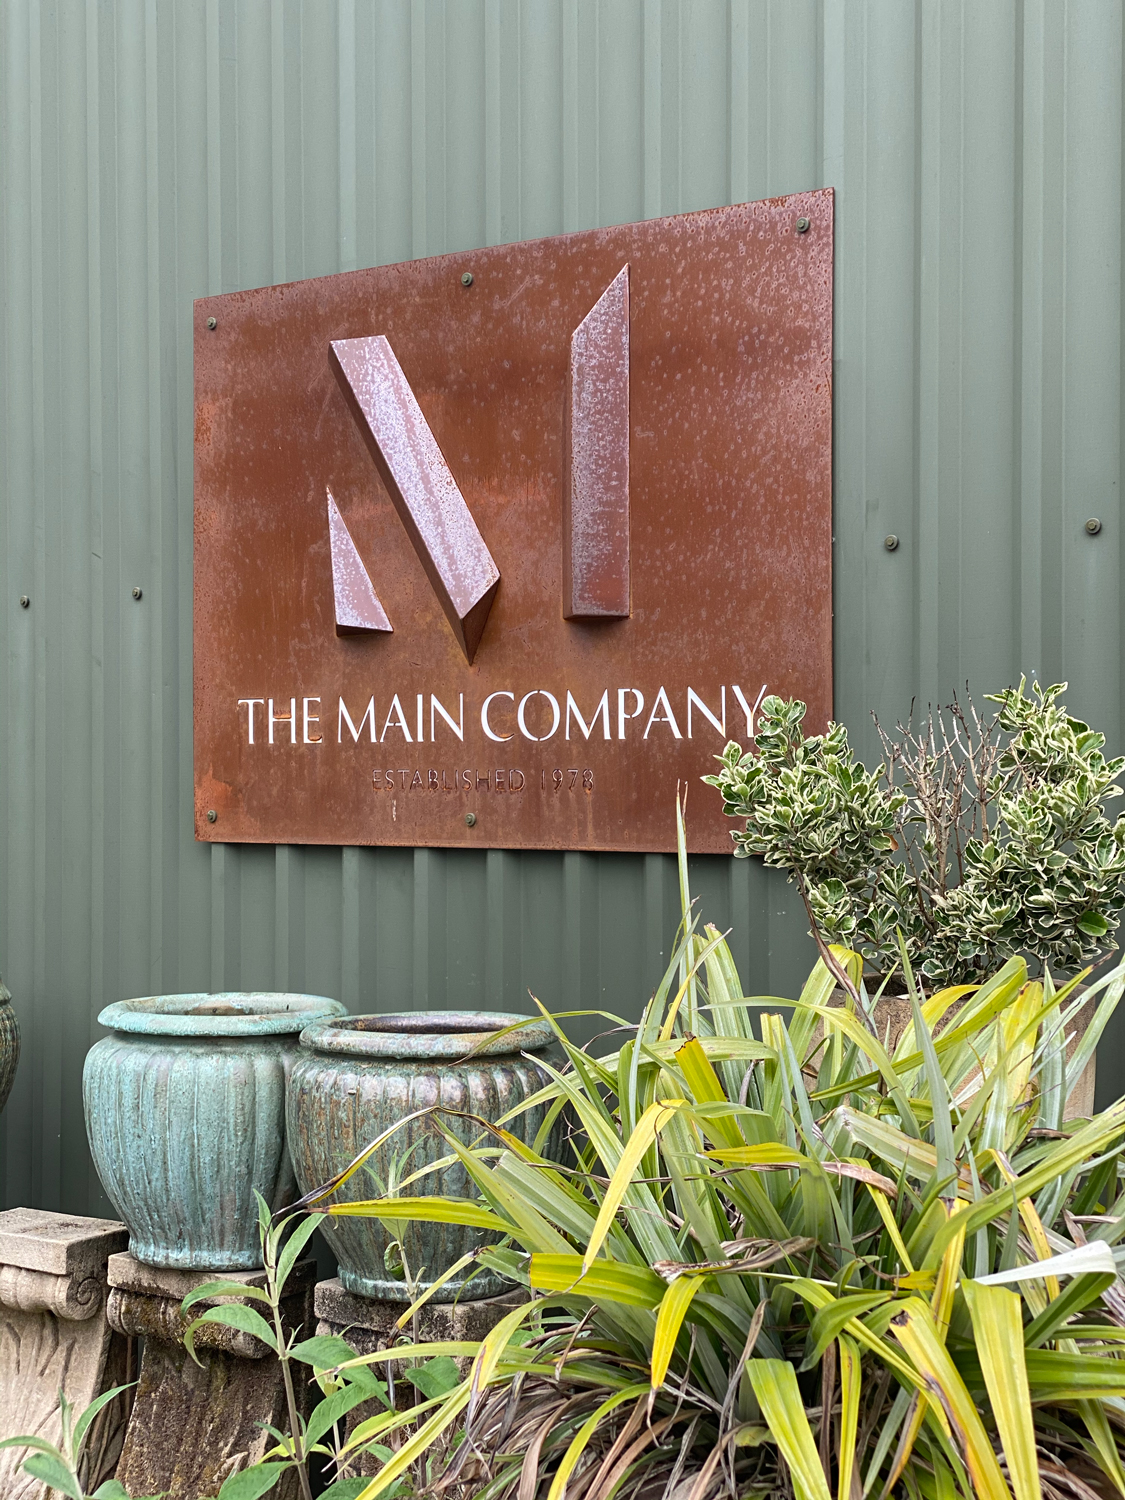 Yorkshire showroom signage made from rusted steel